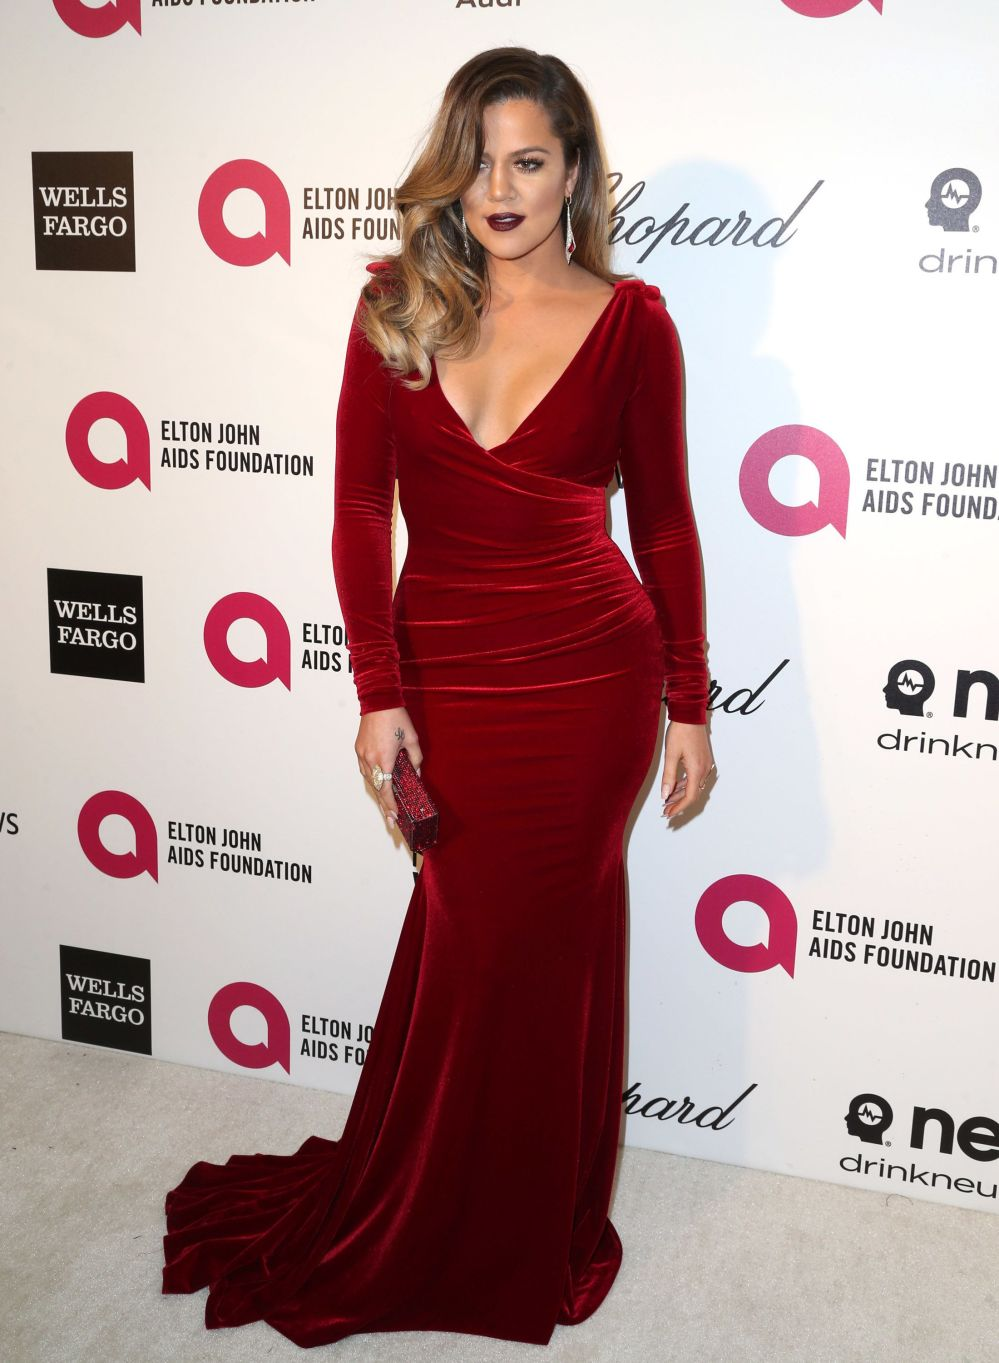 Atthe 22nd annual Elton John AIDS Foundation's Oscar Viewing Party in Los Angeles.